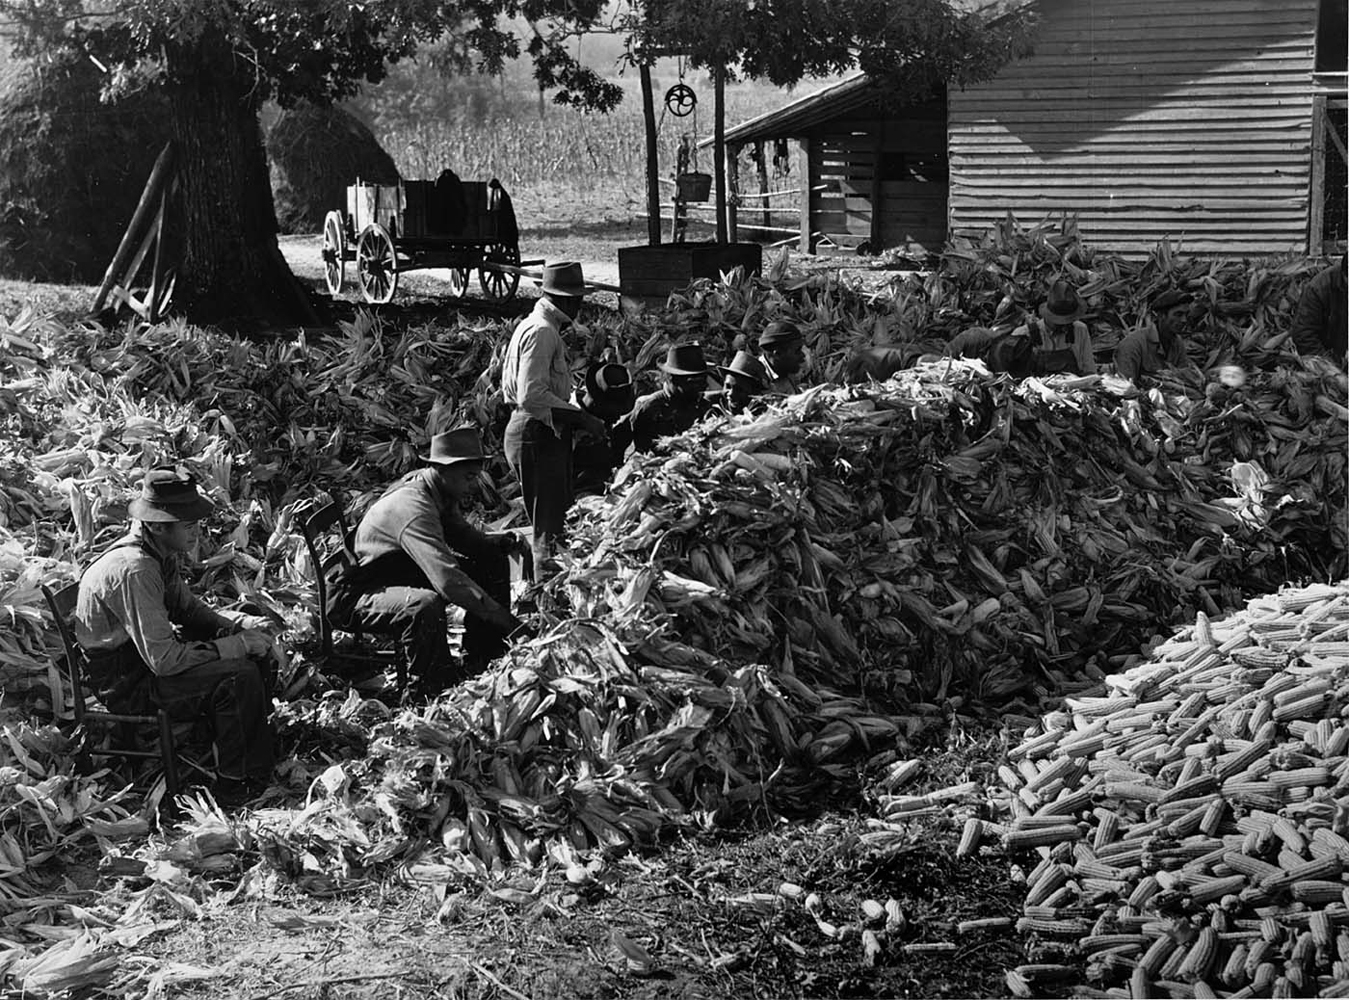 Marion Post Wolcott, Corn-shucking at the Fred Wilkins farm. Stem, North Carolina, 1939, gelatin silver print, signed, 11 x 14 inches